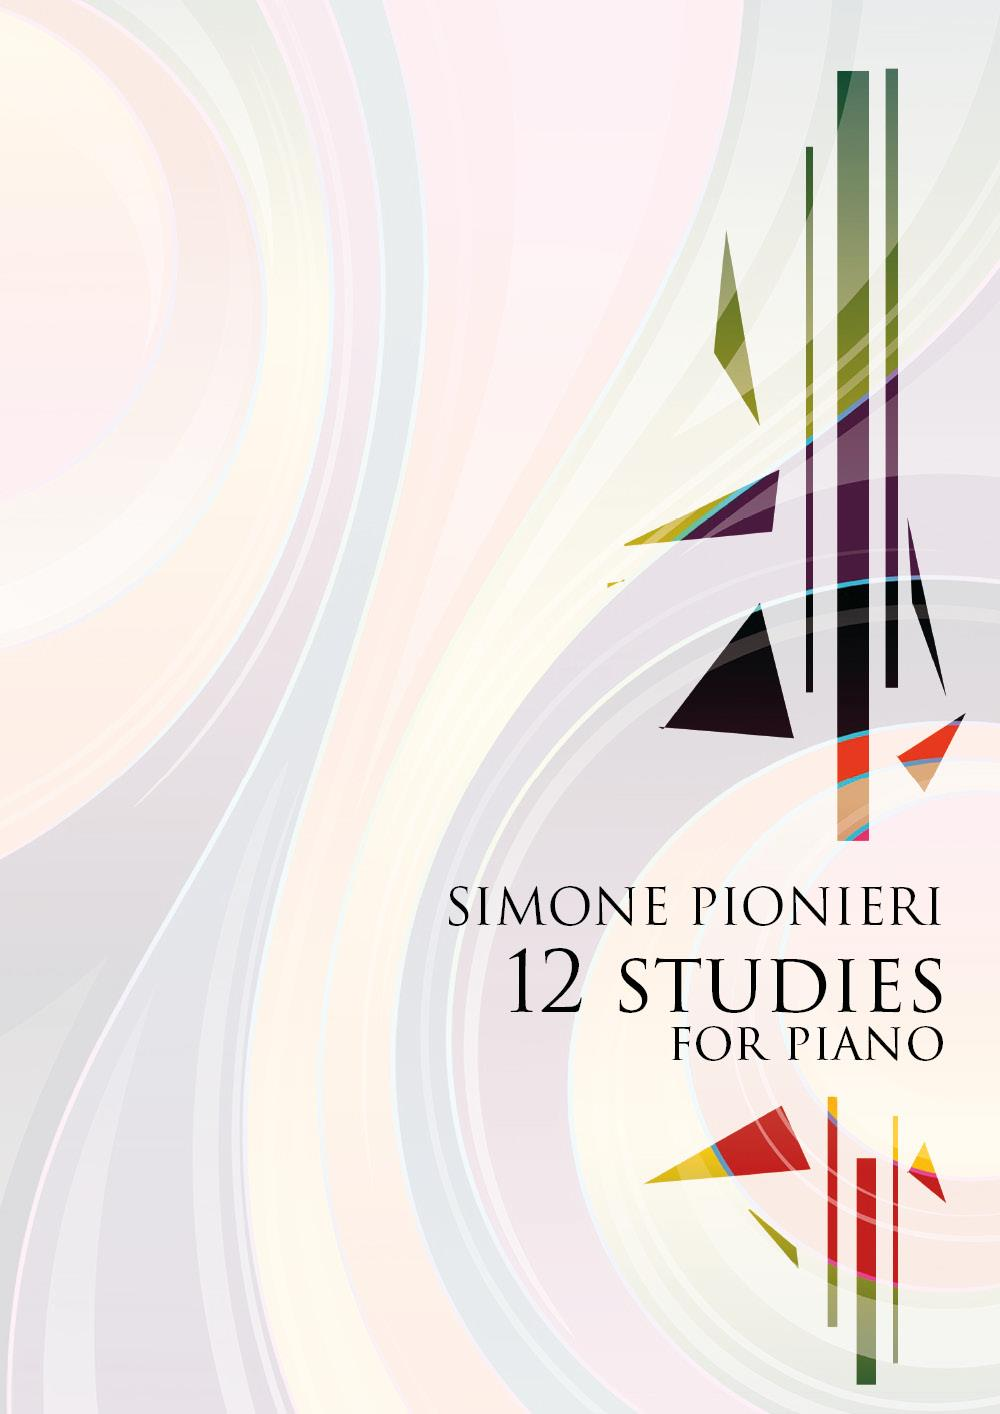 12 studies for piano